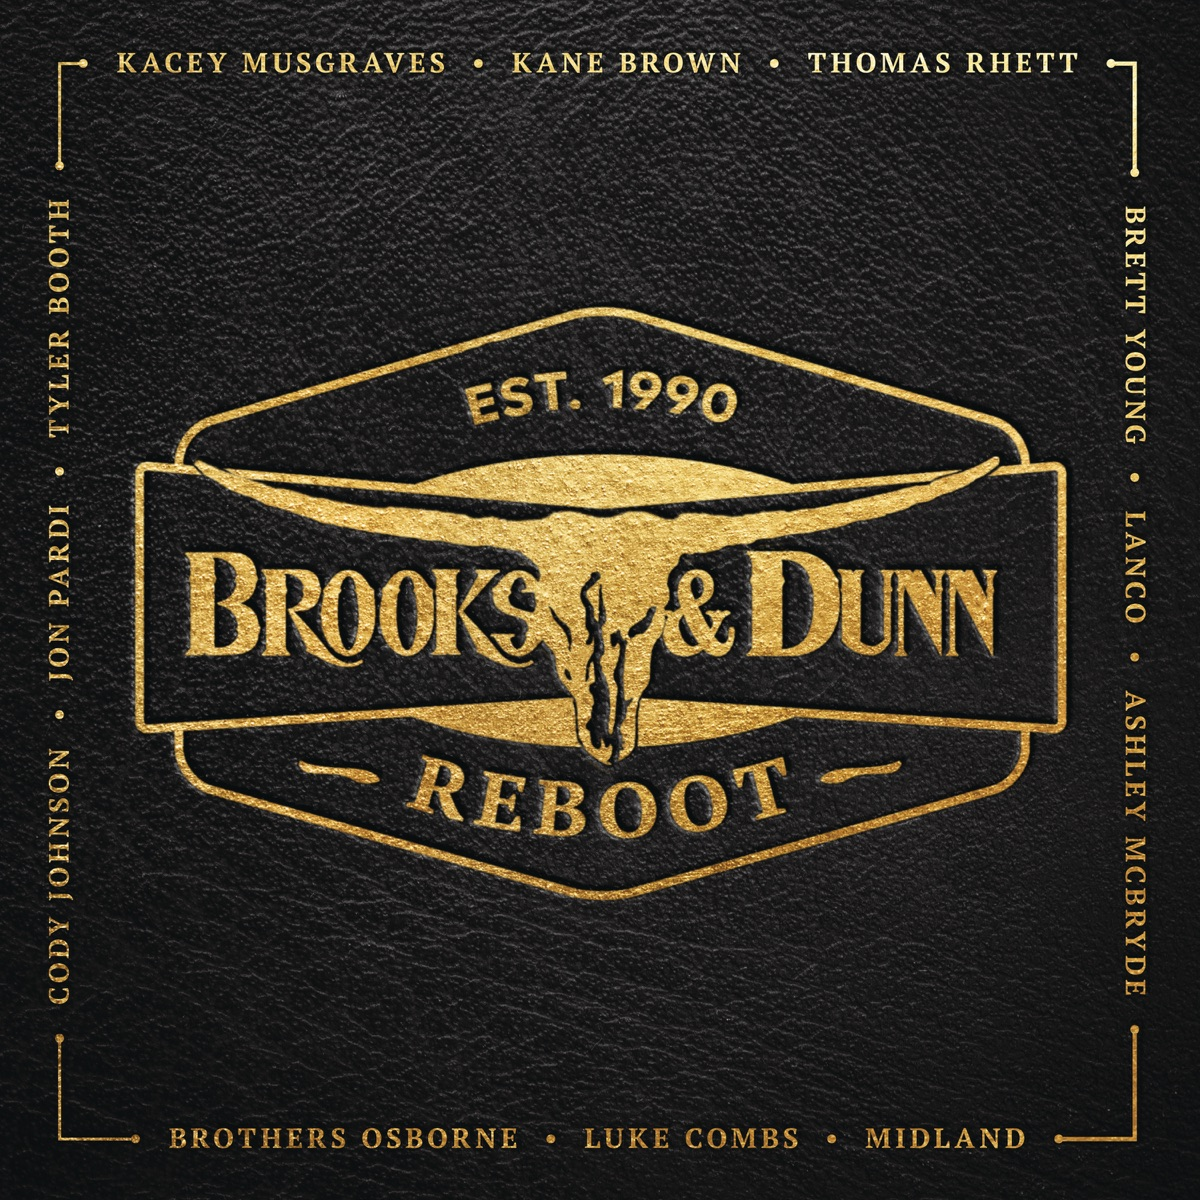 Reboot Brooks  Dunn CD cover